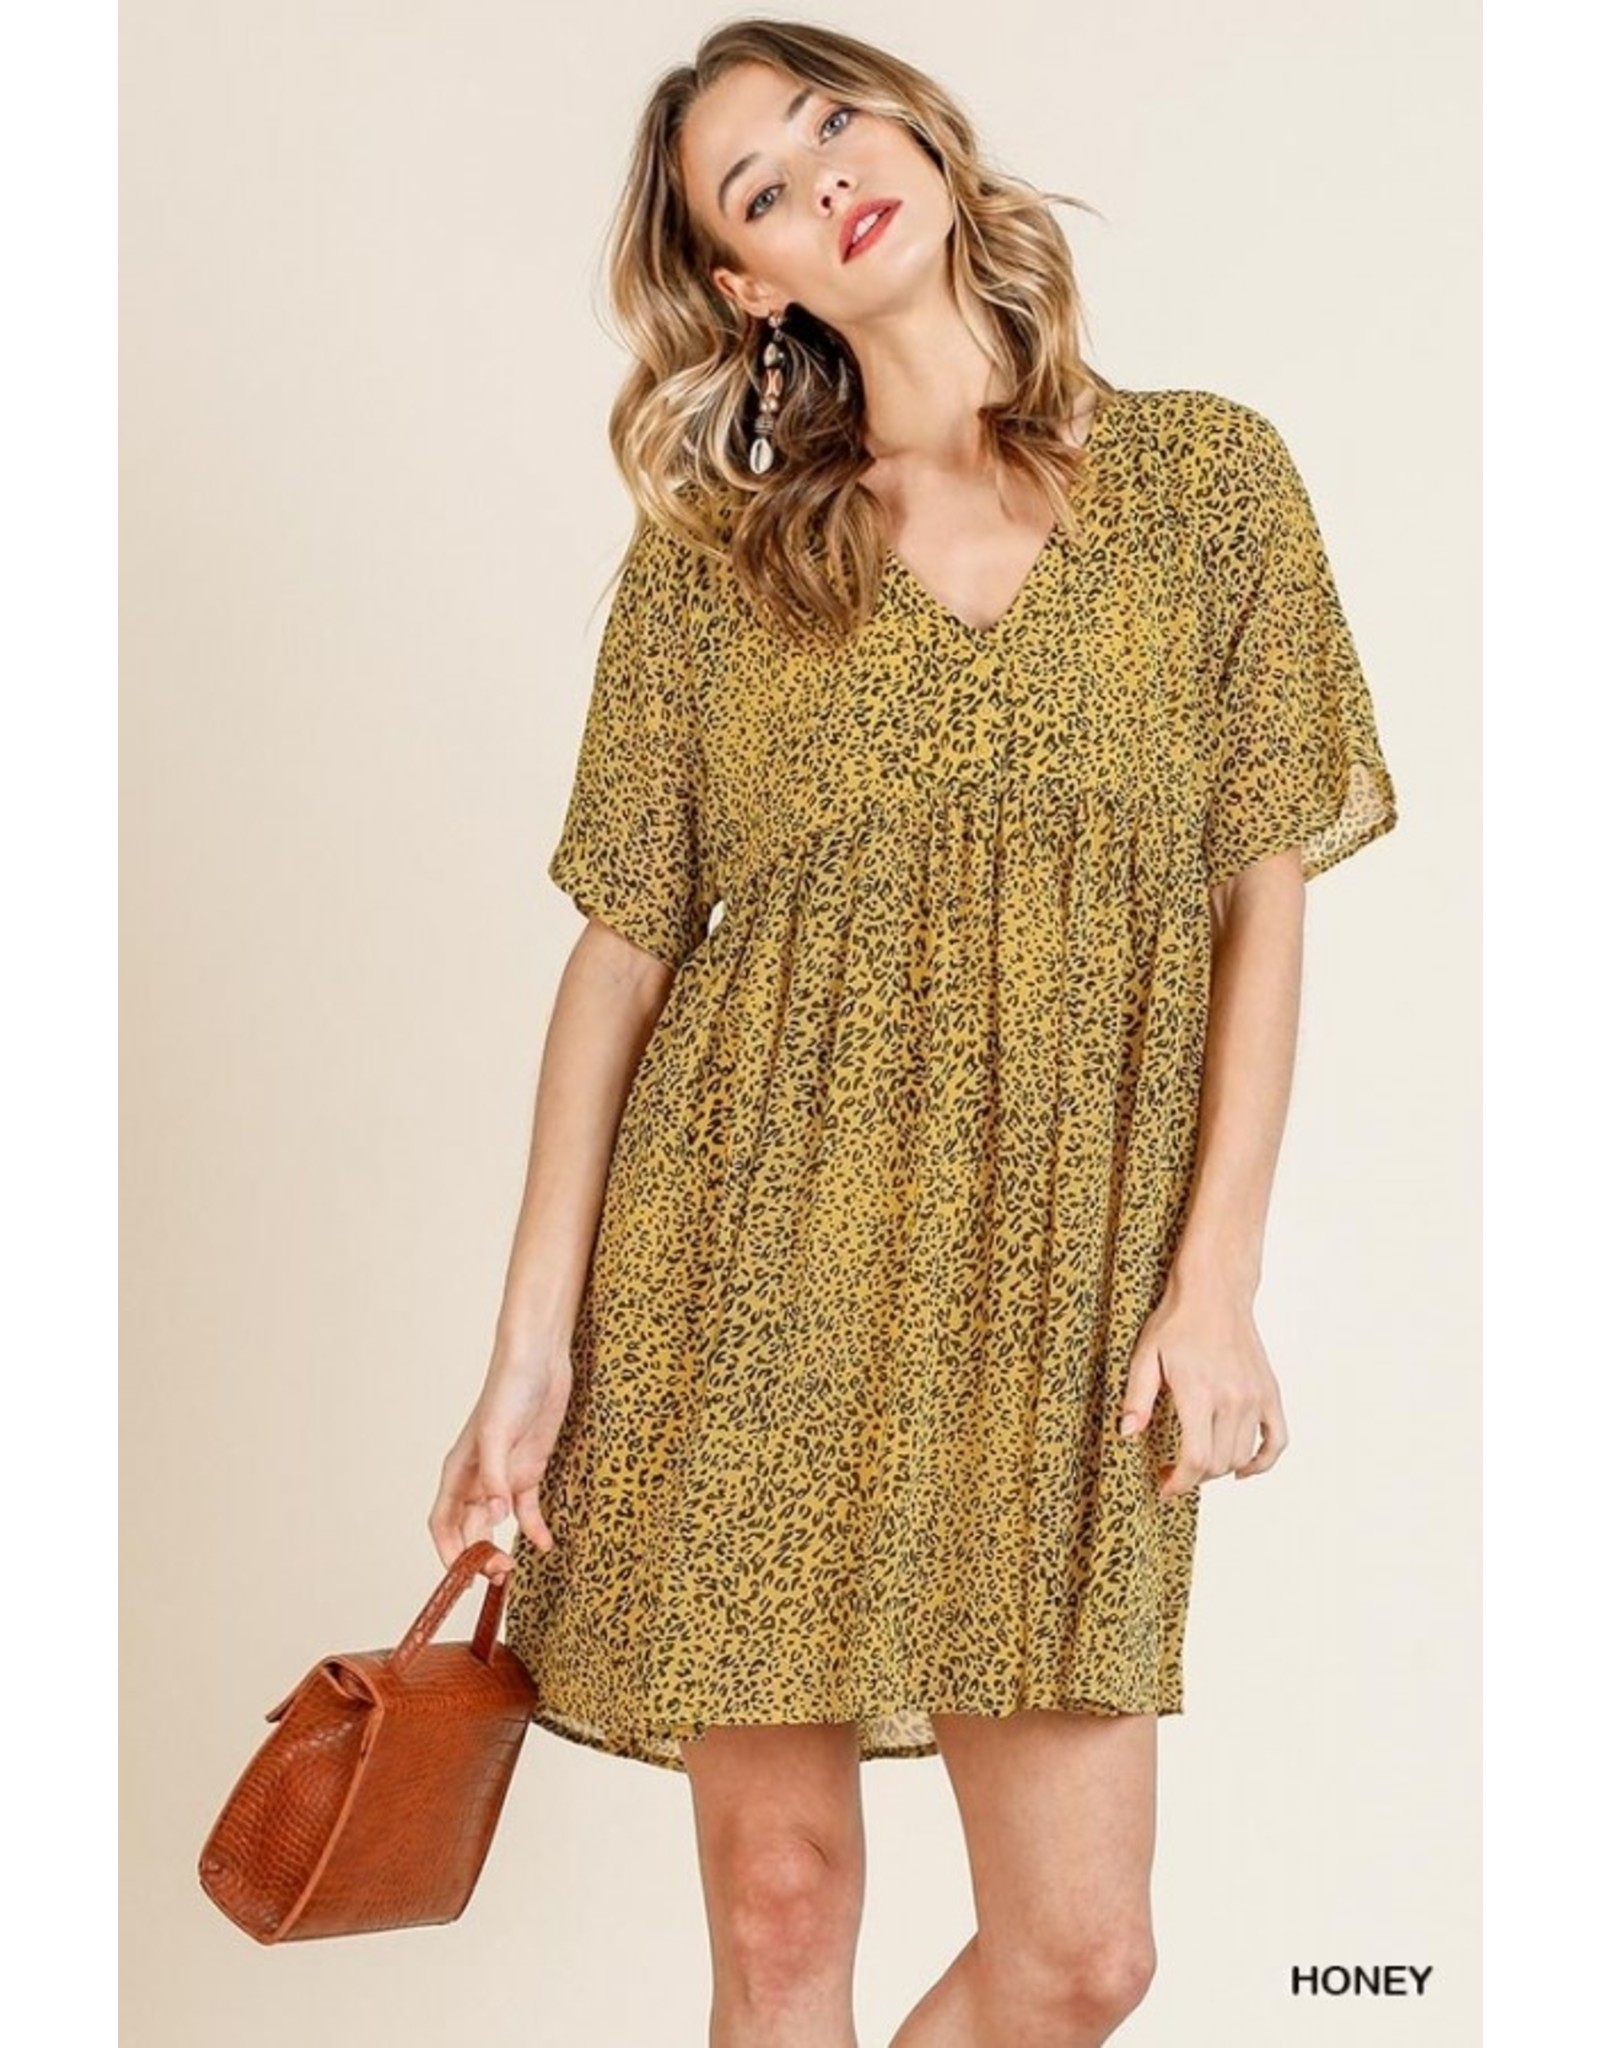 Animal Print SS V-Neck Babydoll Dress, Honey